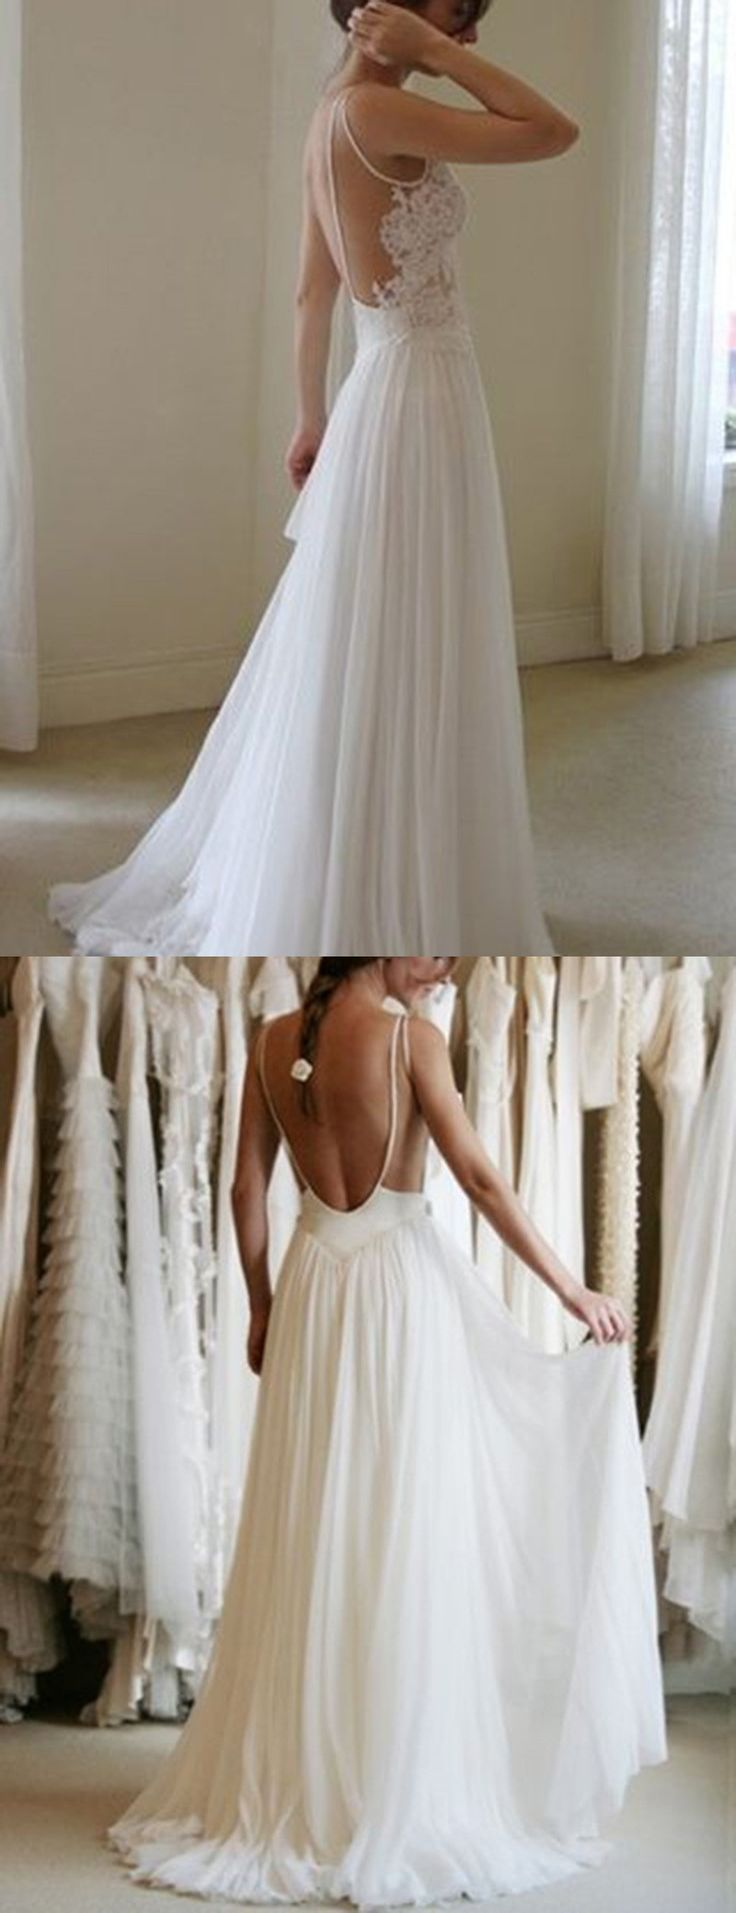 Simple Wedding Dress,Backless Wedding Dresses,Lace Wedding Gowns,Sexy Wedding Dress,White Wedding Dresses,Spaghetti Strap Wedding Dress,White Wedding Dress,